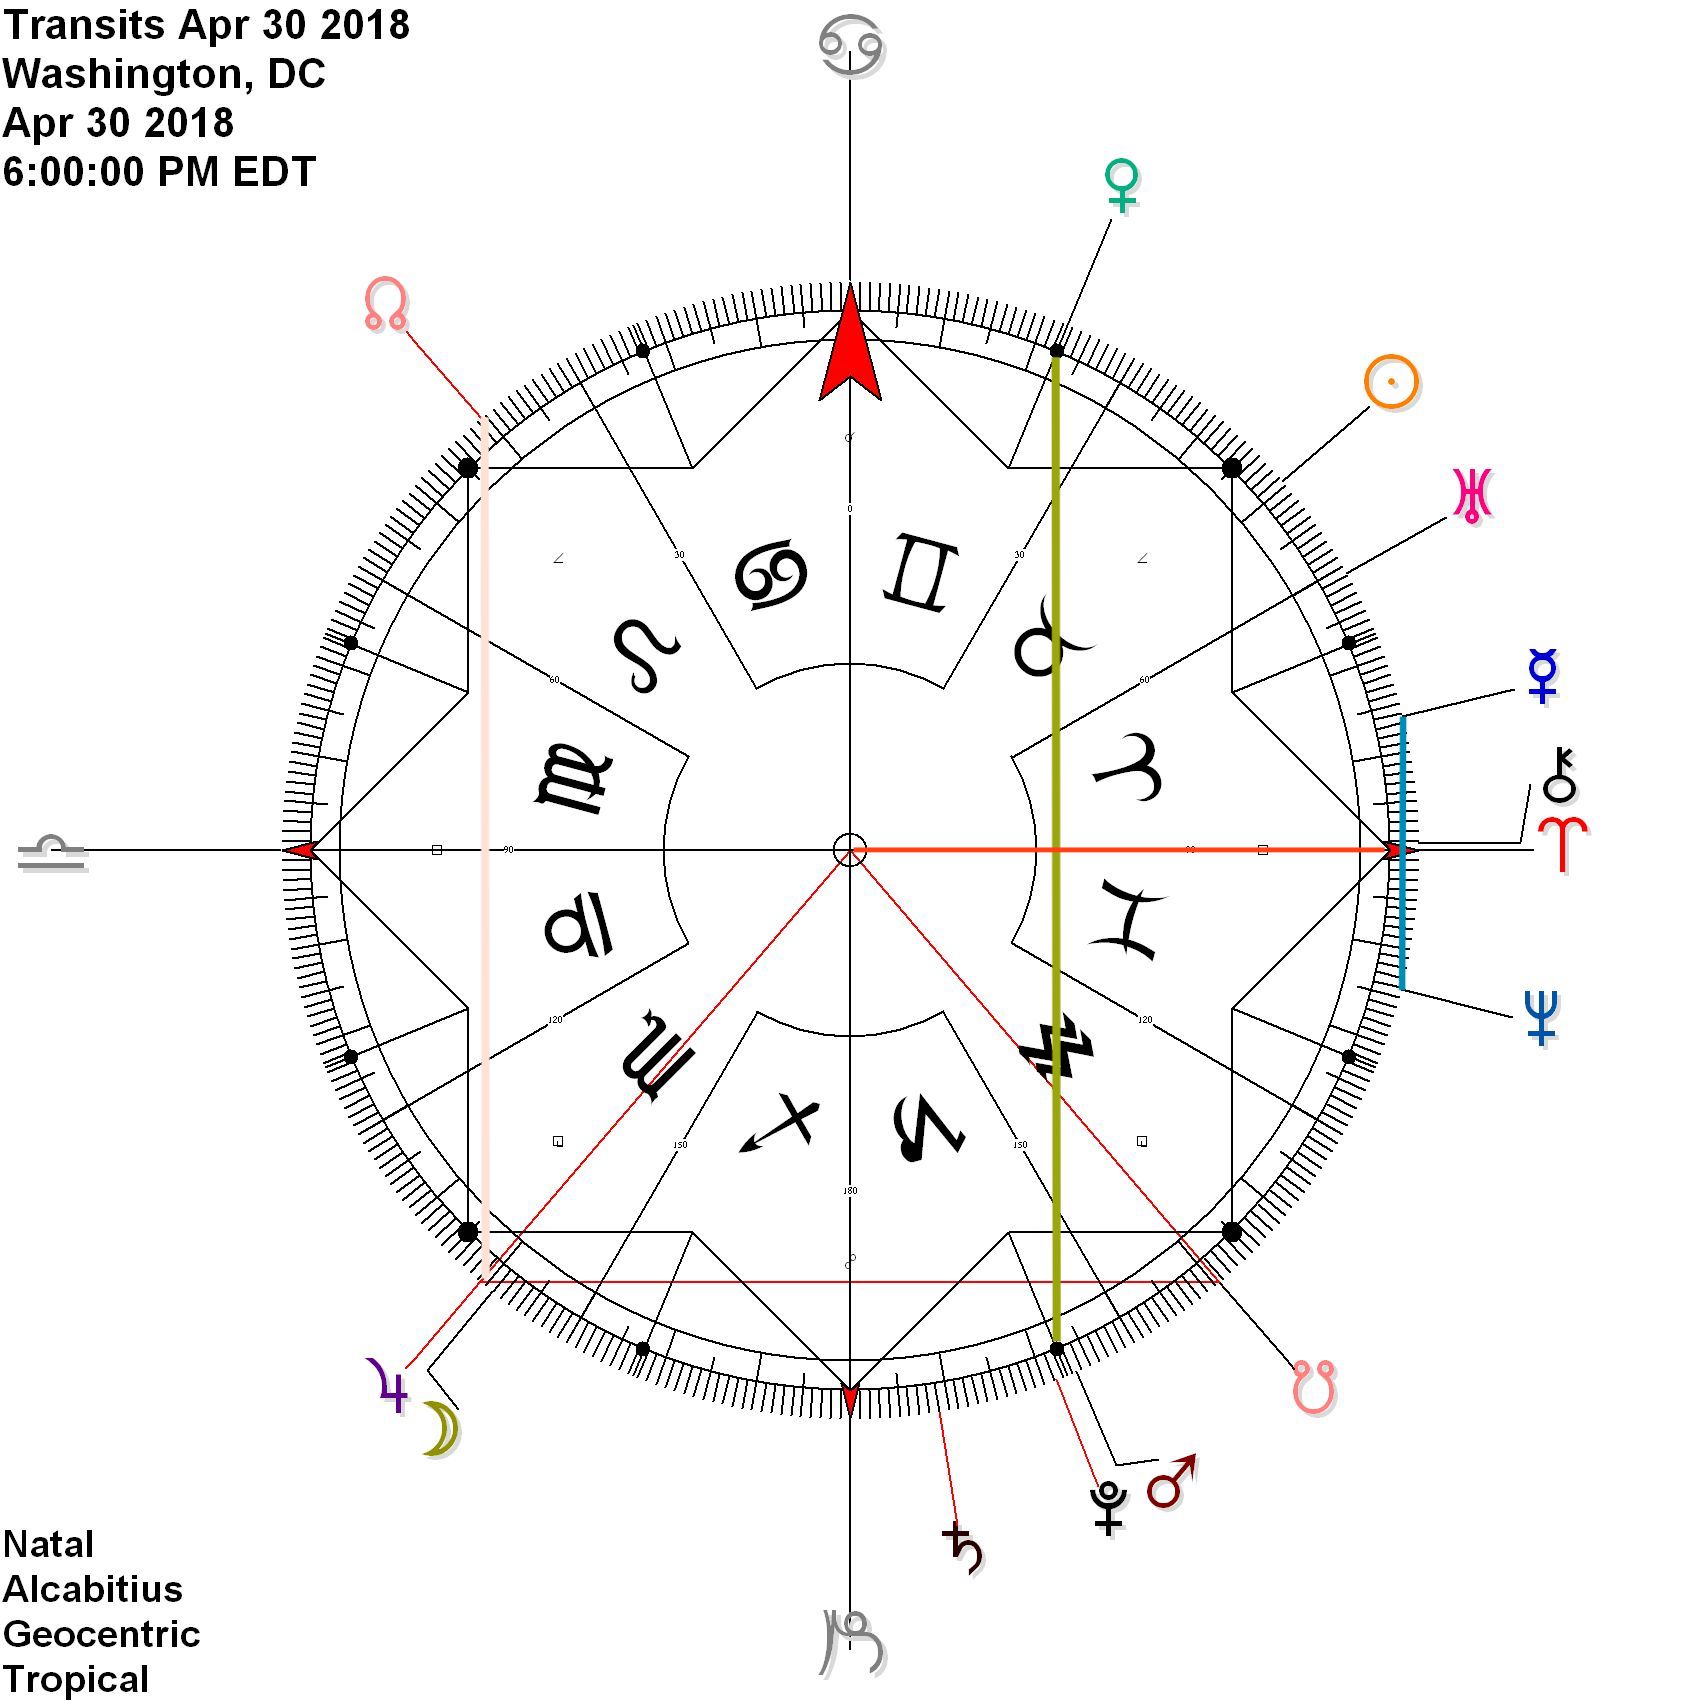 Monday, April 30th  Mercury Neptune joins Venus Mars and Jupiter Node while Chiron sits in very early Aries The Moon joining Jupiter may set off something pretty spectacular!